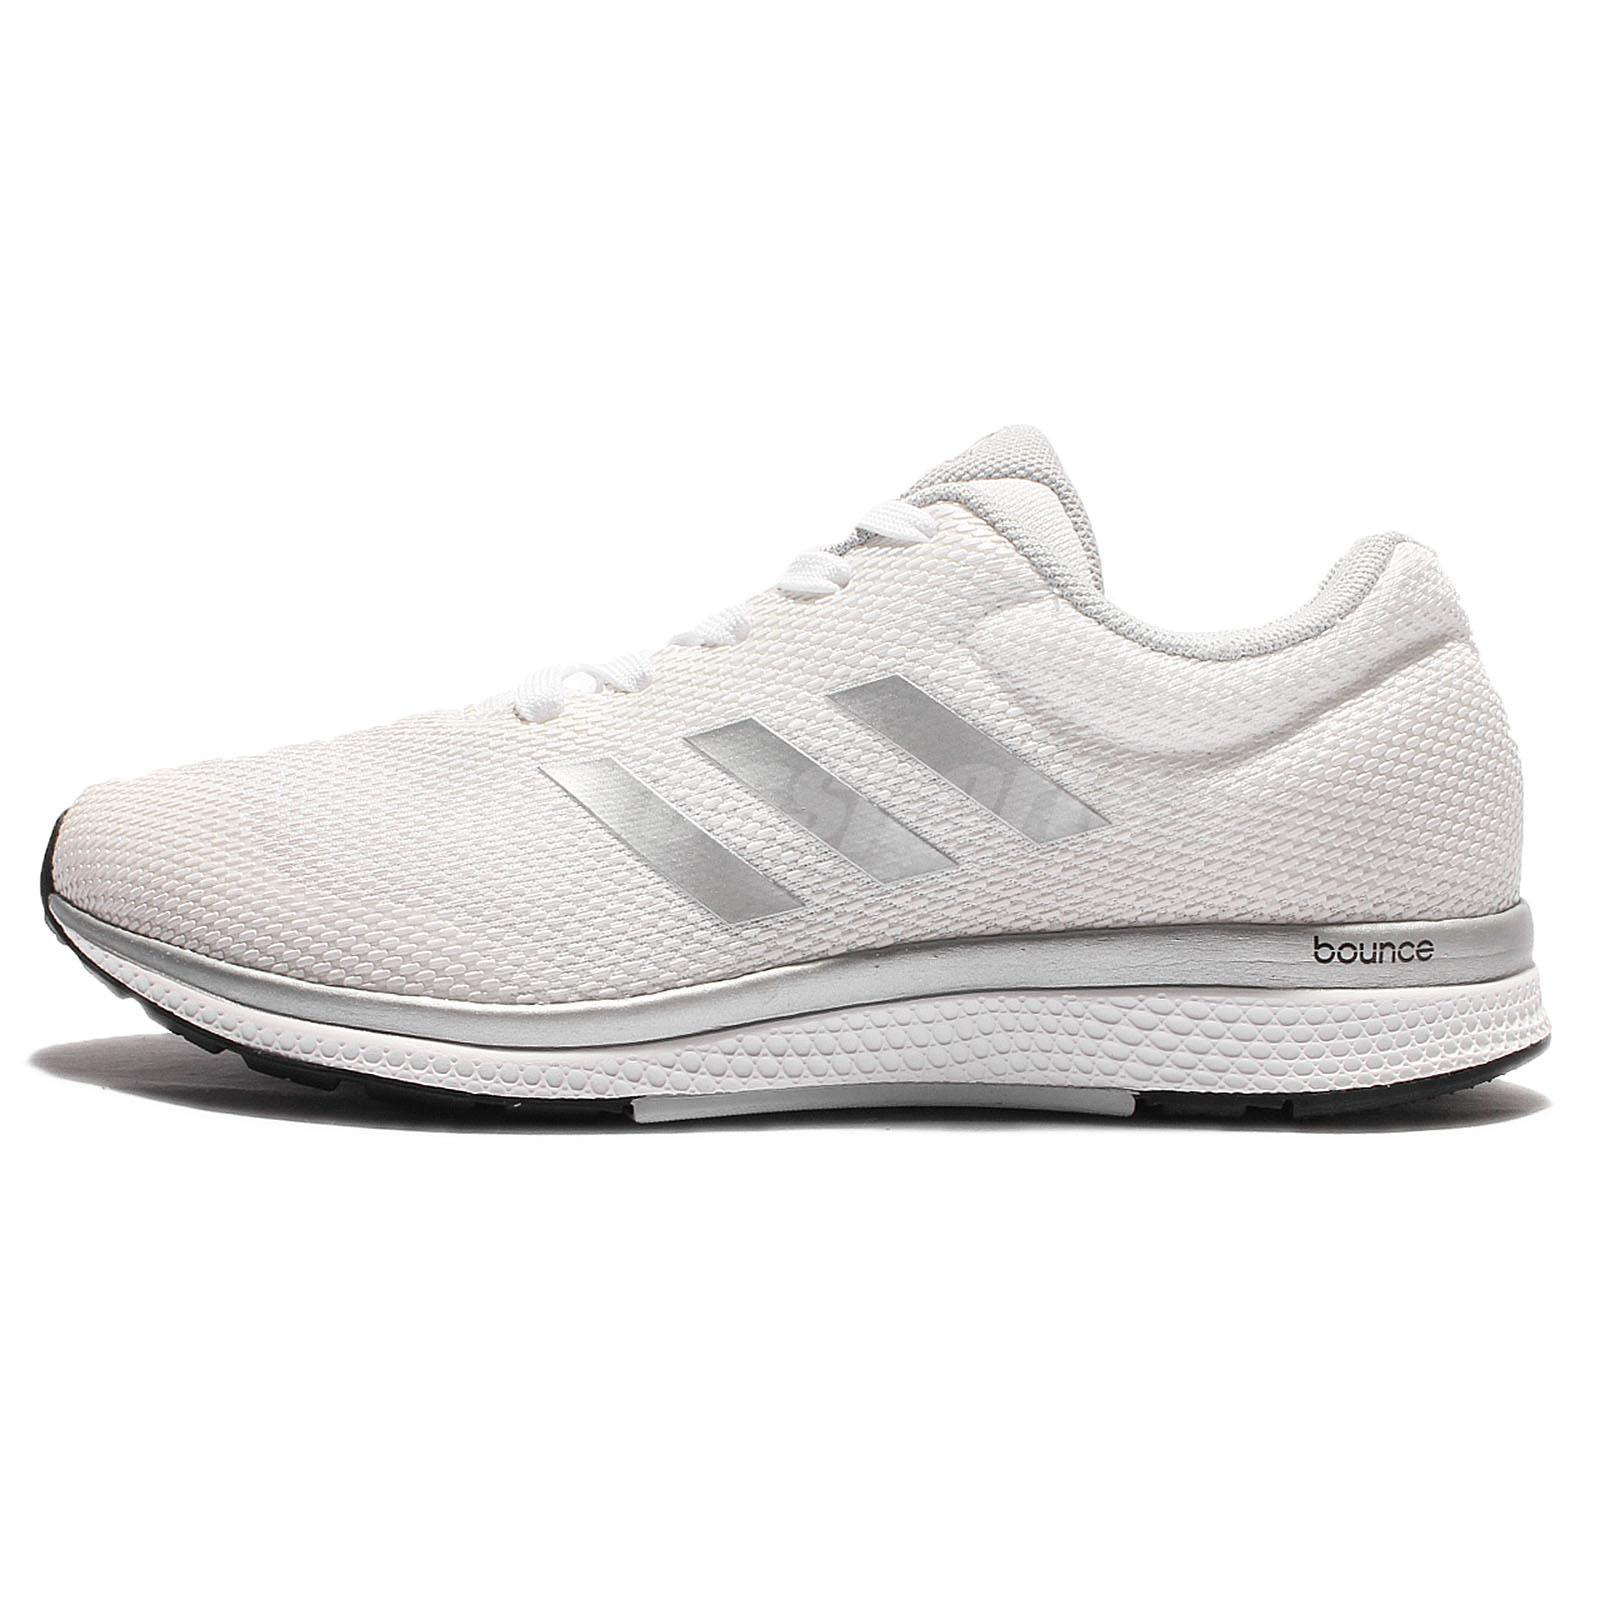 df1313d99 adidas Mana Bounce 2 W Aramis White Silver Womens Running Shoes B39027